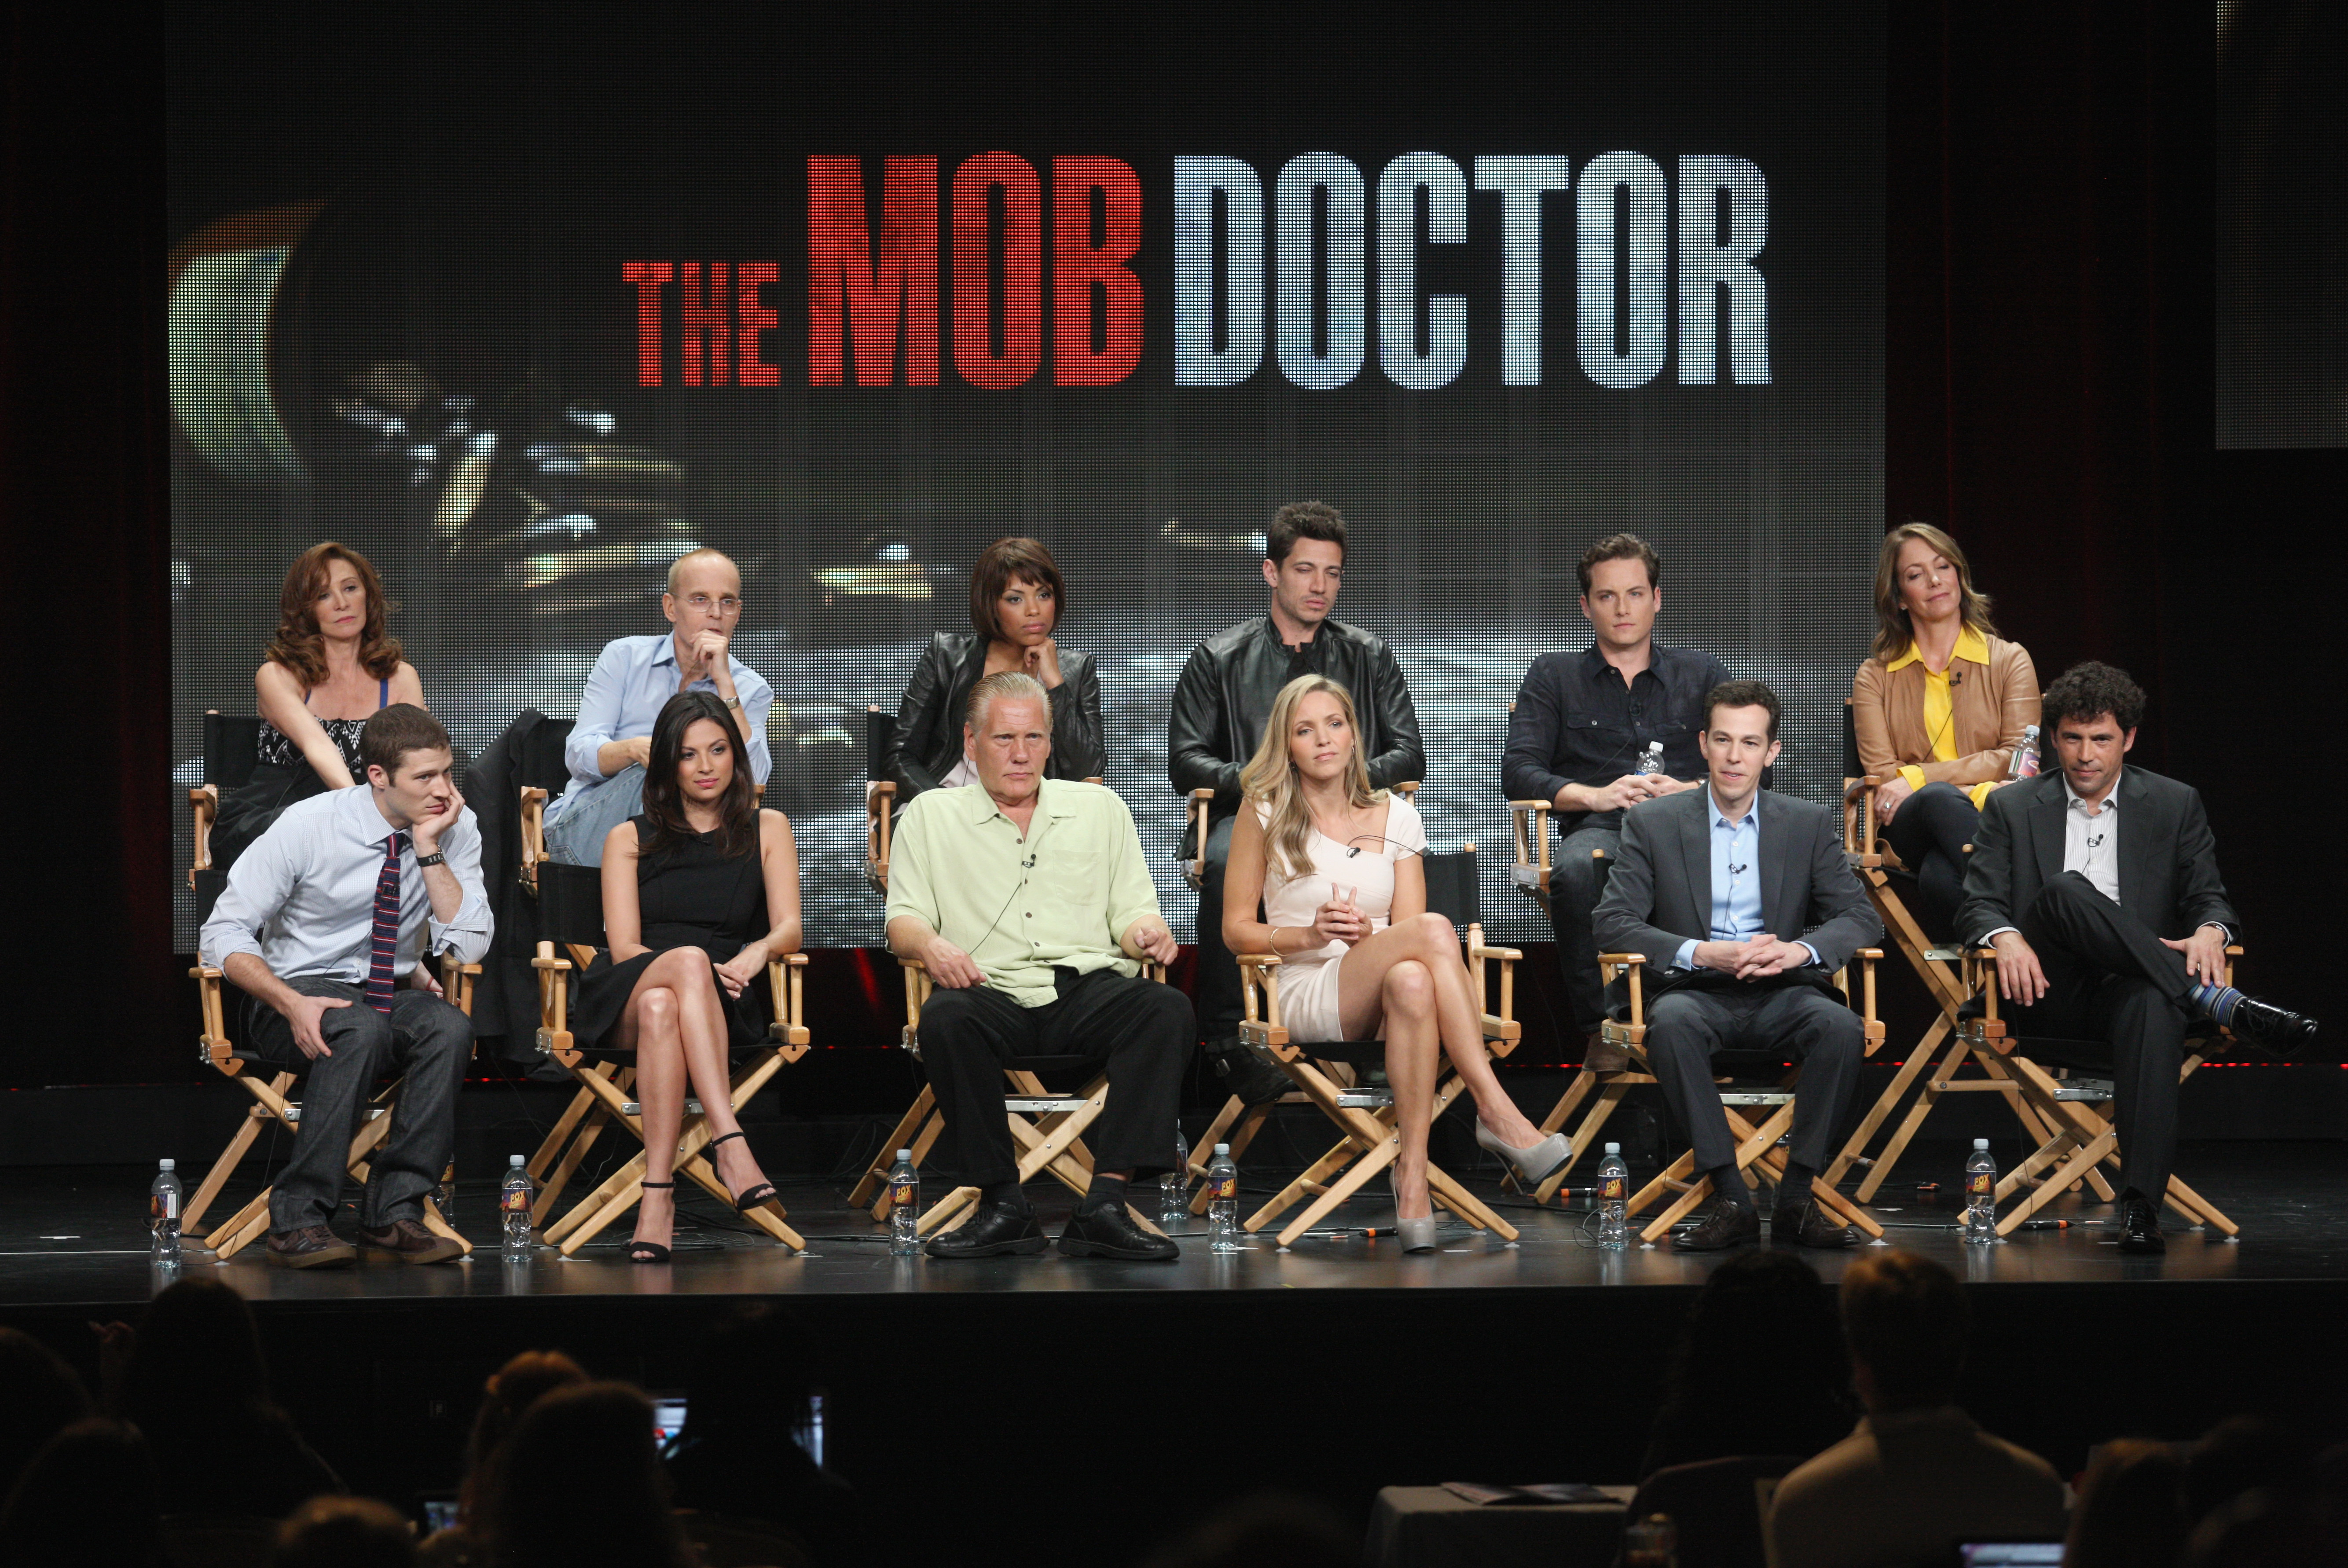 Wendy Makkena, Zeljko Ivanek, Jaime Lee Kirchner, James Carpinello and Jesse Lee Soffer and executive producer Carla Kettner, Zach Gilford, Floriana Lima, William Forsythe, Jordana Spiro and co-creators/executive producers Josh Berman and Rob Wright spoke onstage at The Mob Doctor panel during Fox's 2012 TCA presentation.